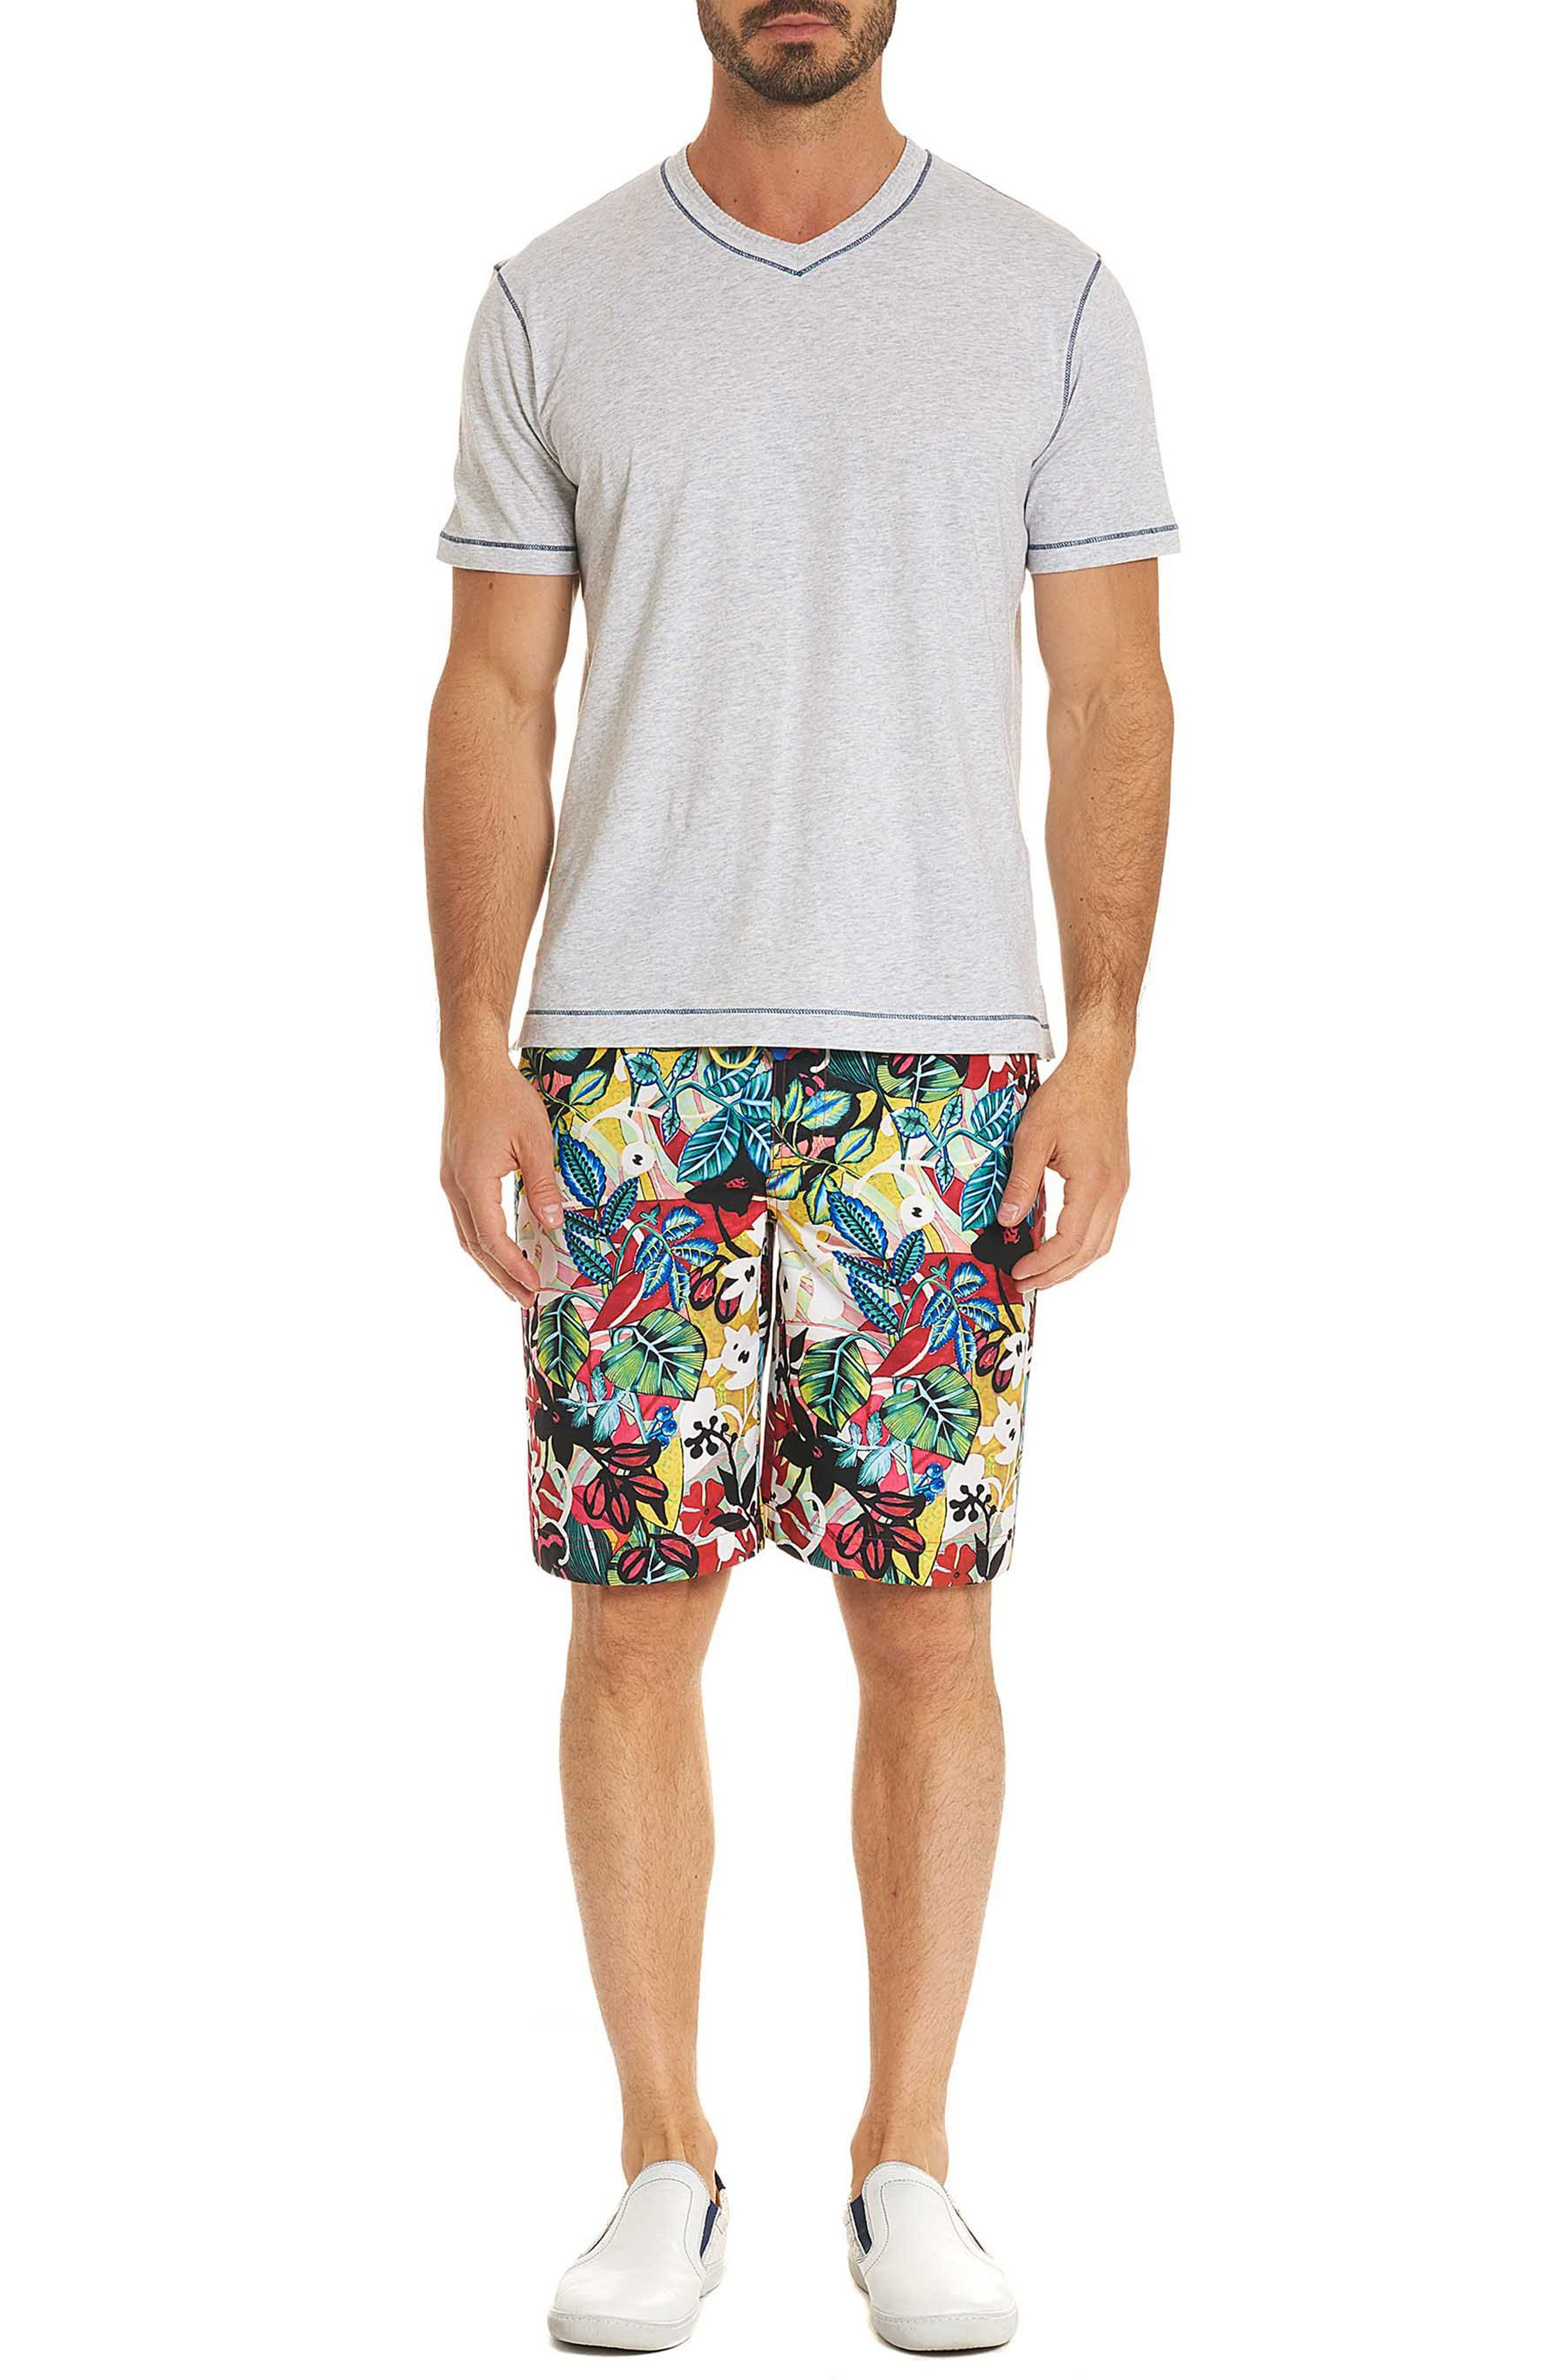 Barbarito Classic Fit Board Shorts,                             Alternate thumbnail 7, color,                             MULTI